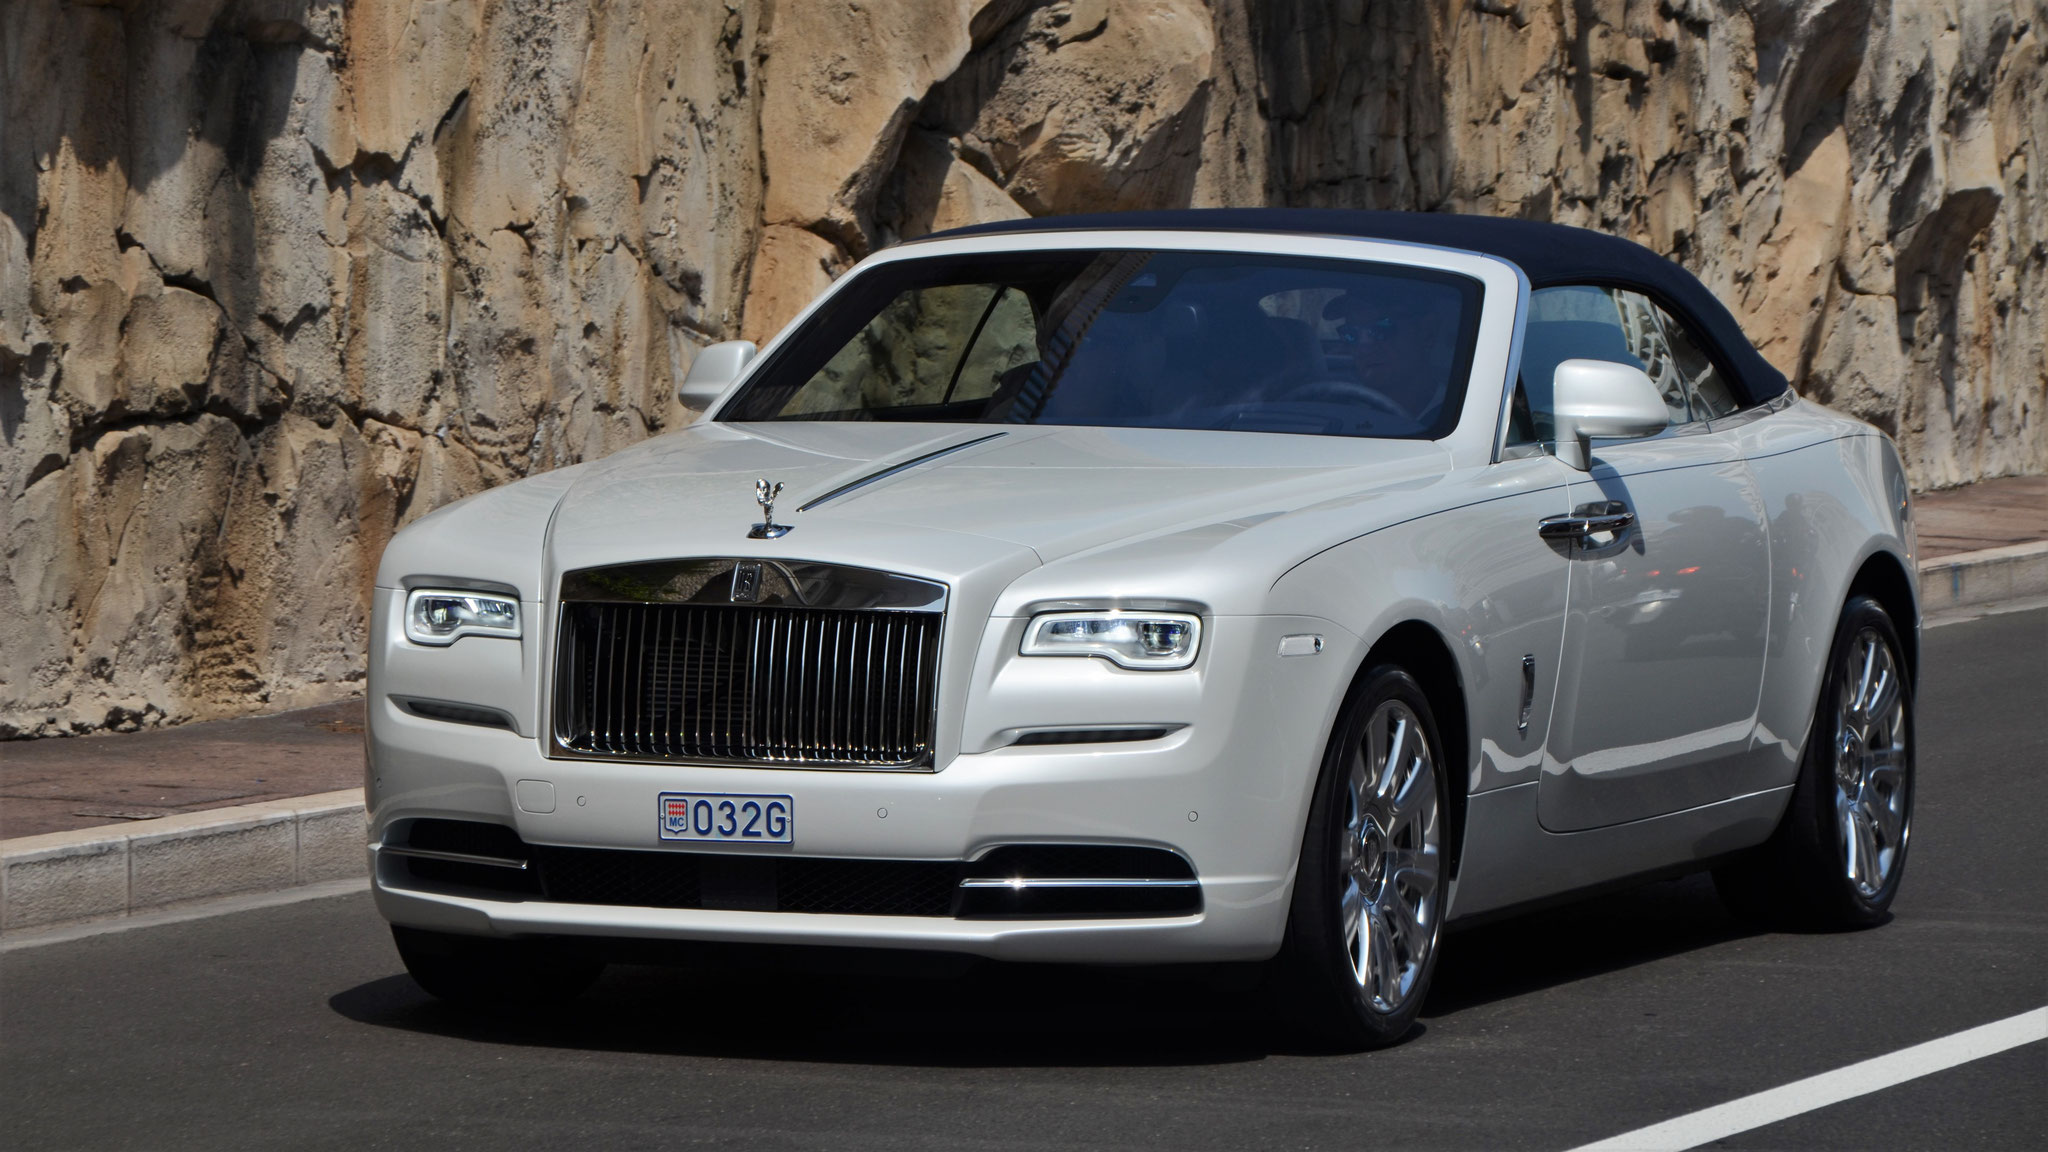 Rolls Royce Dawn - 032G (MC)